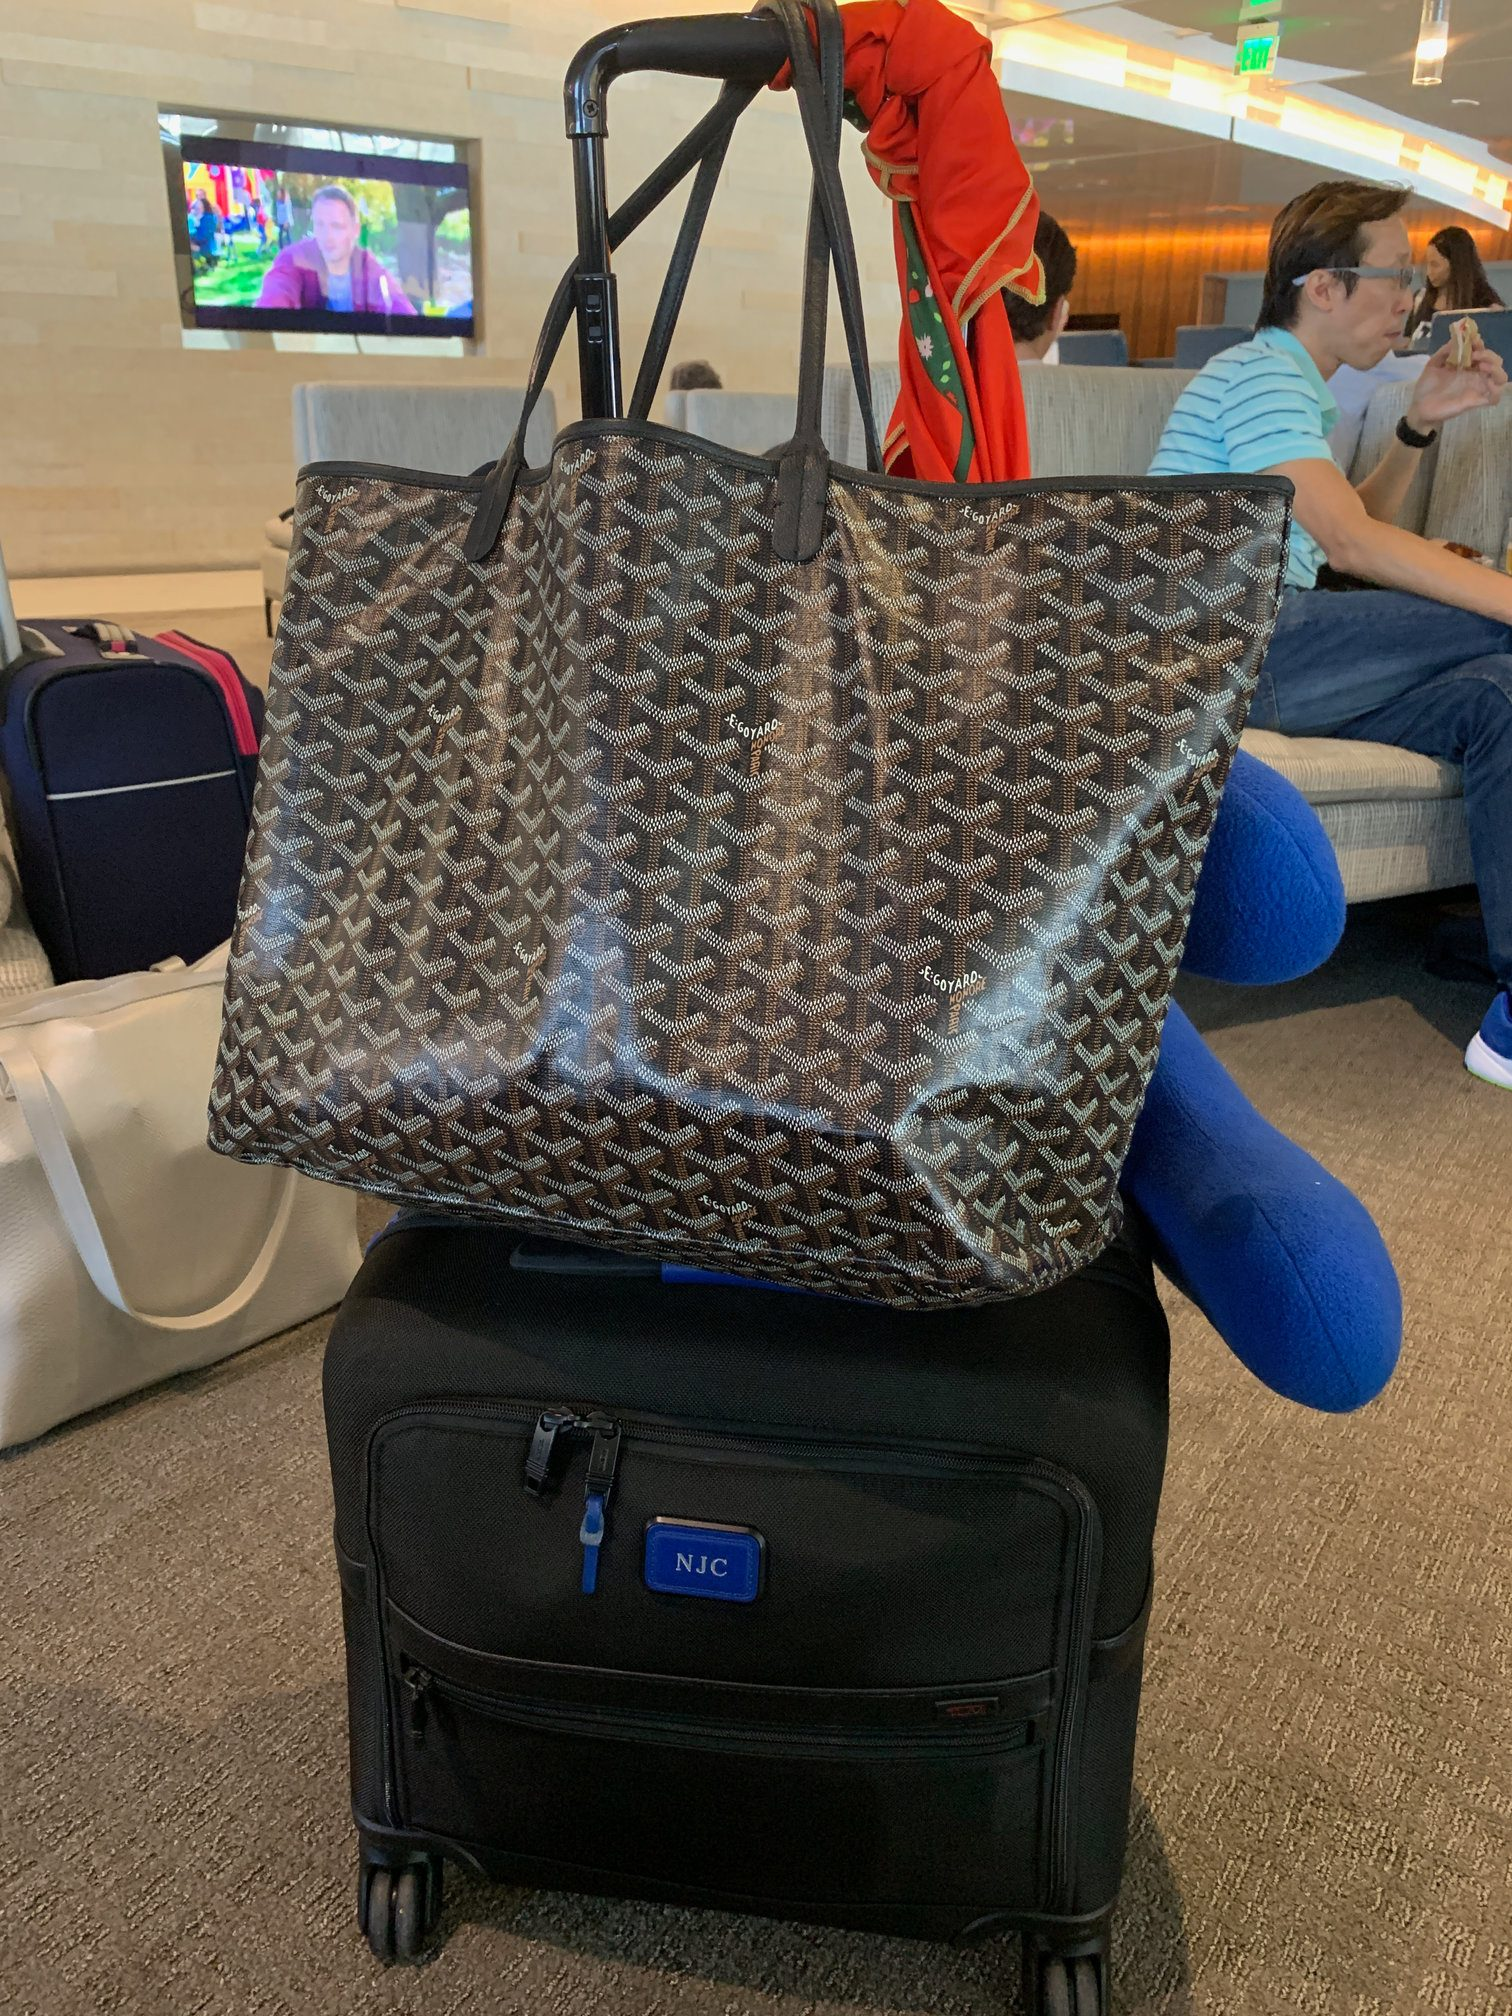 cary on and tote at airport pack carry on two weeks international travel